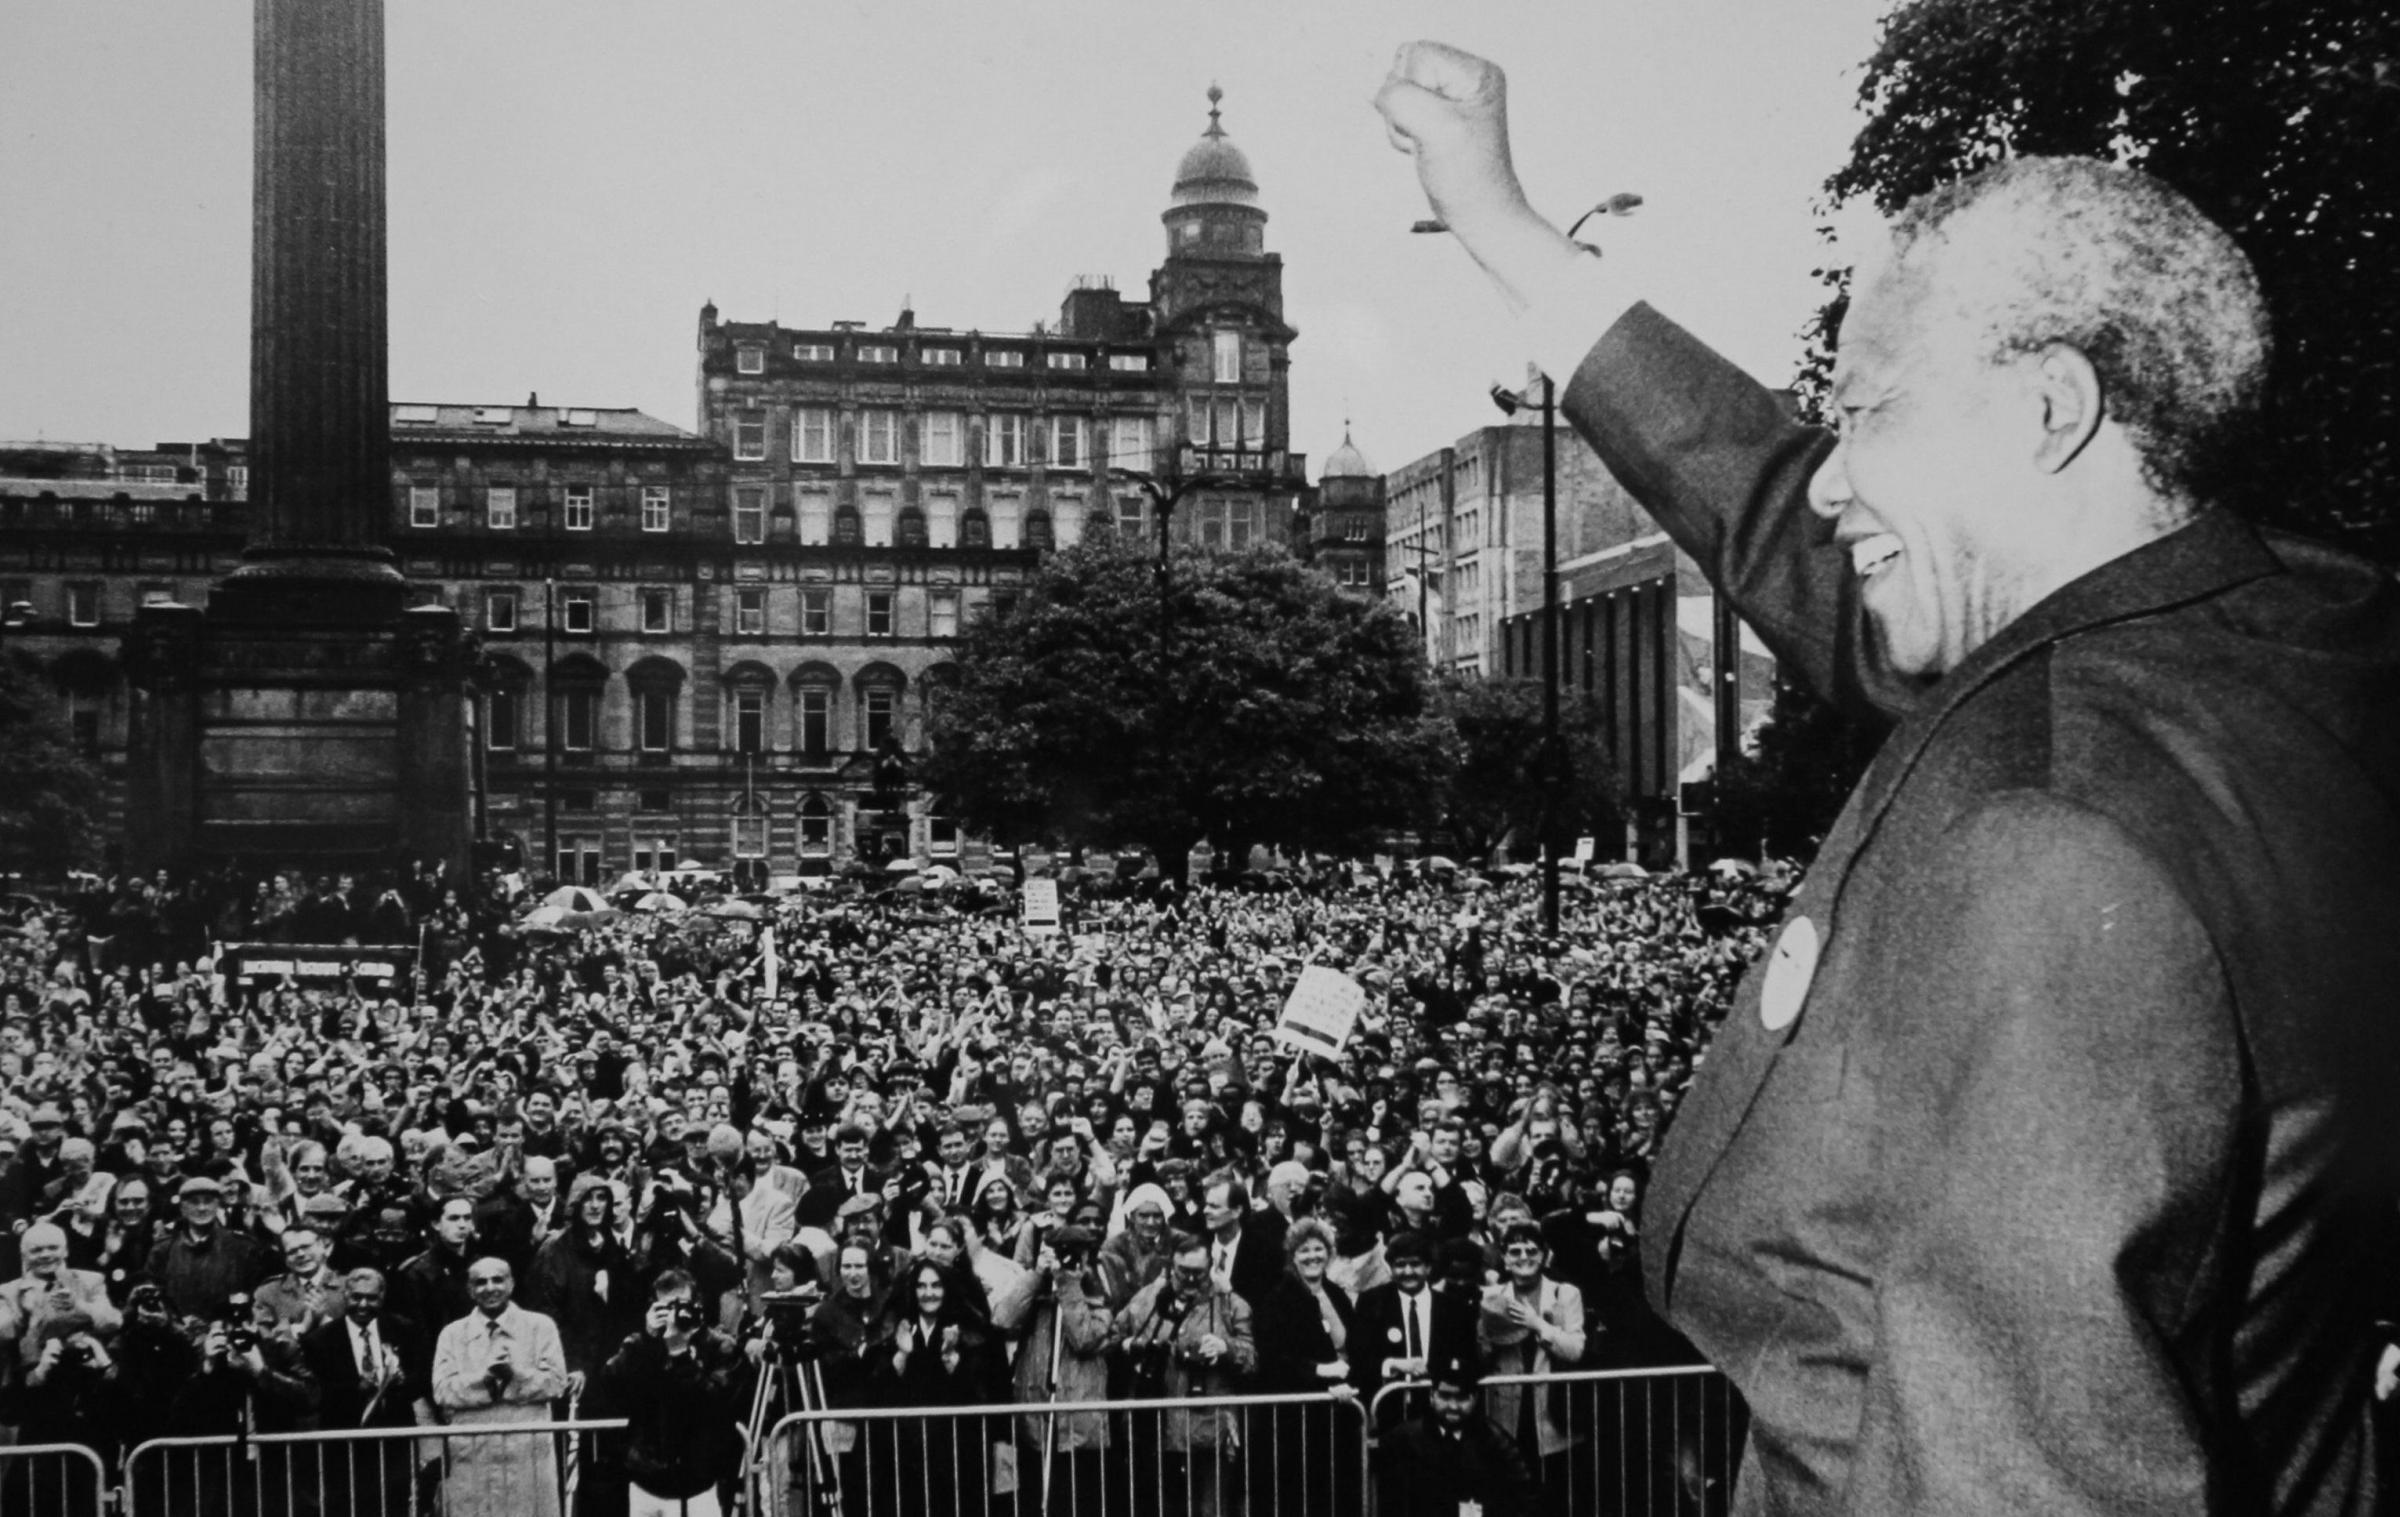 October 9 will mark 25 years since Nelson Mandela's historic trip to Glasgow